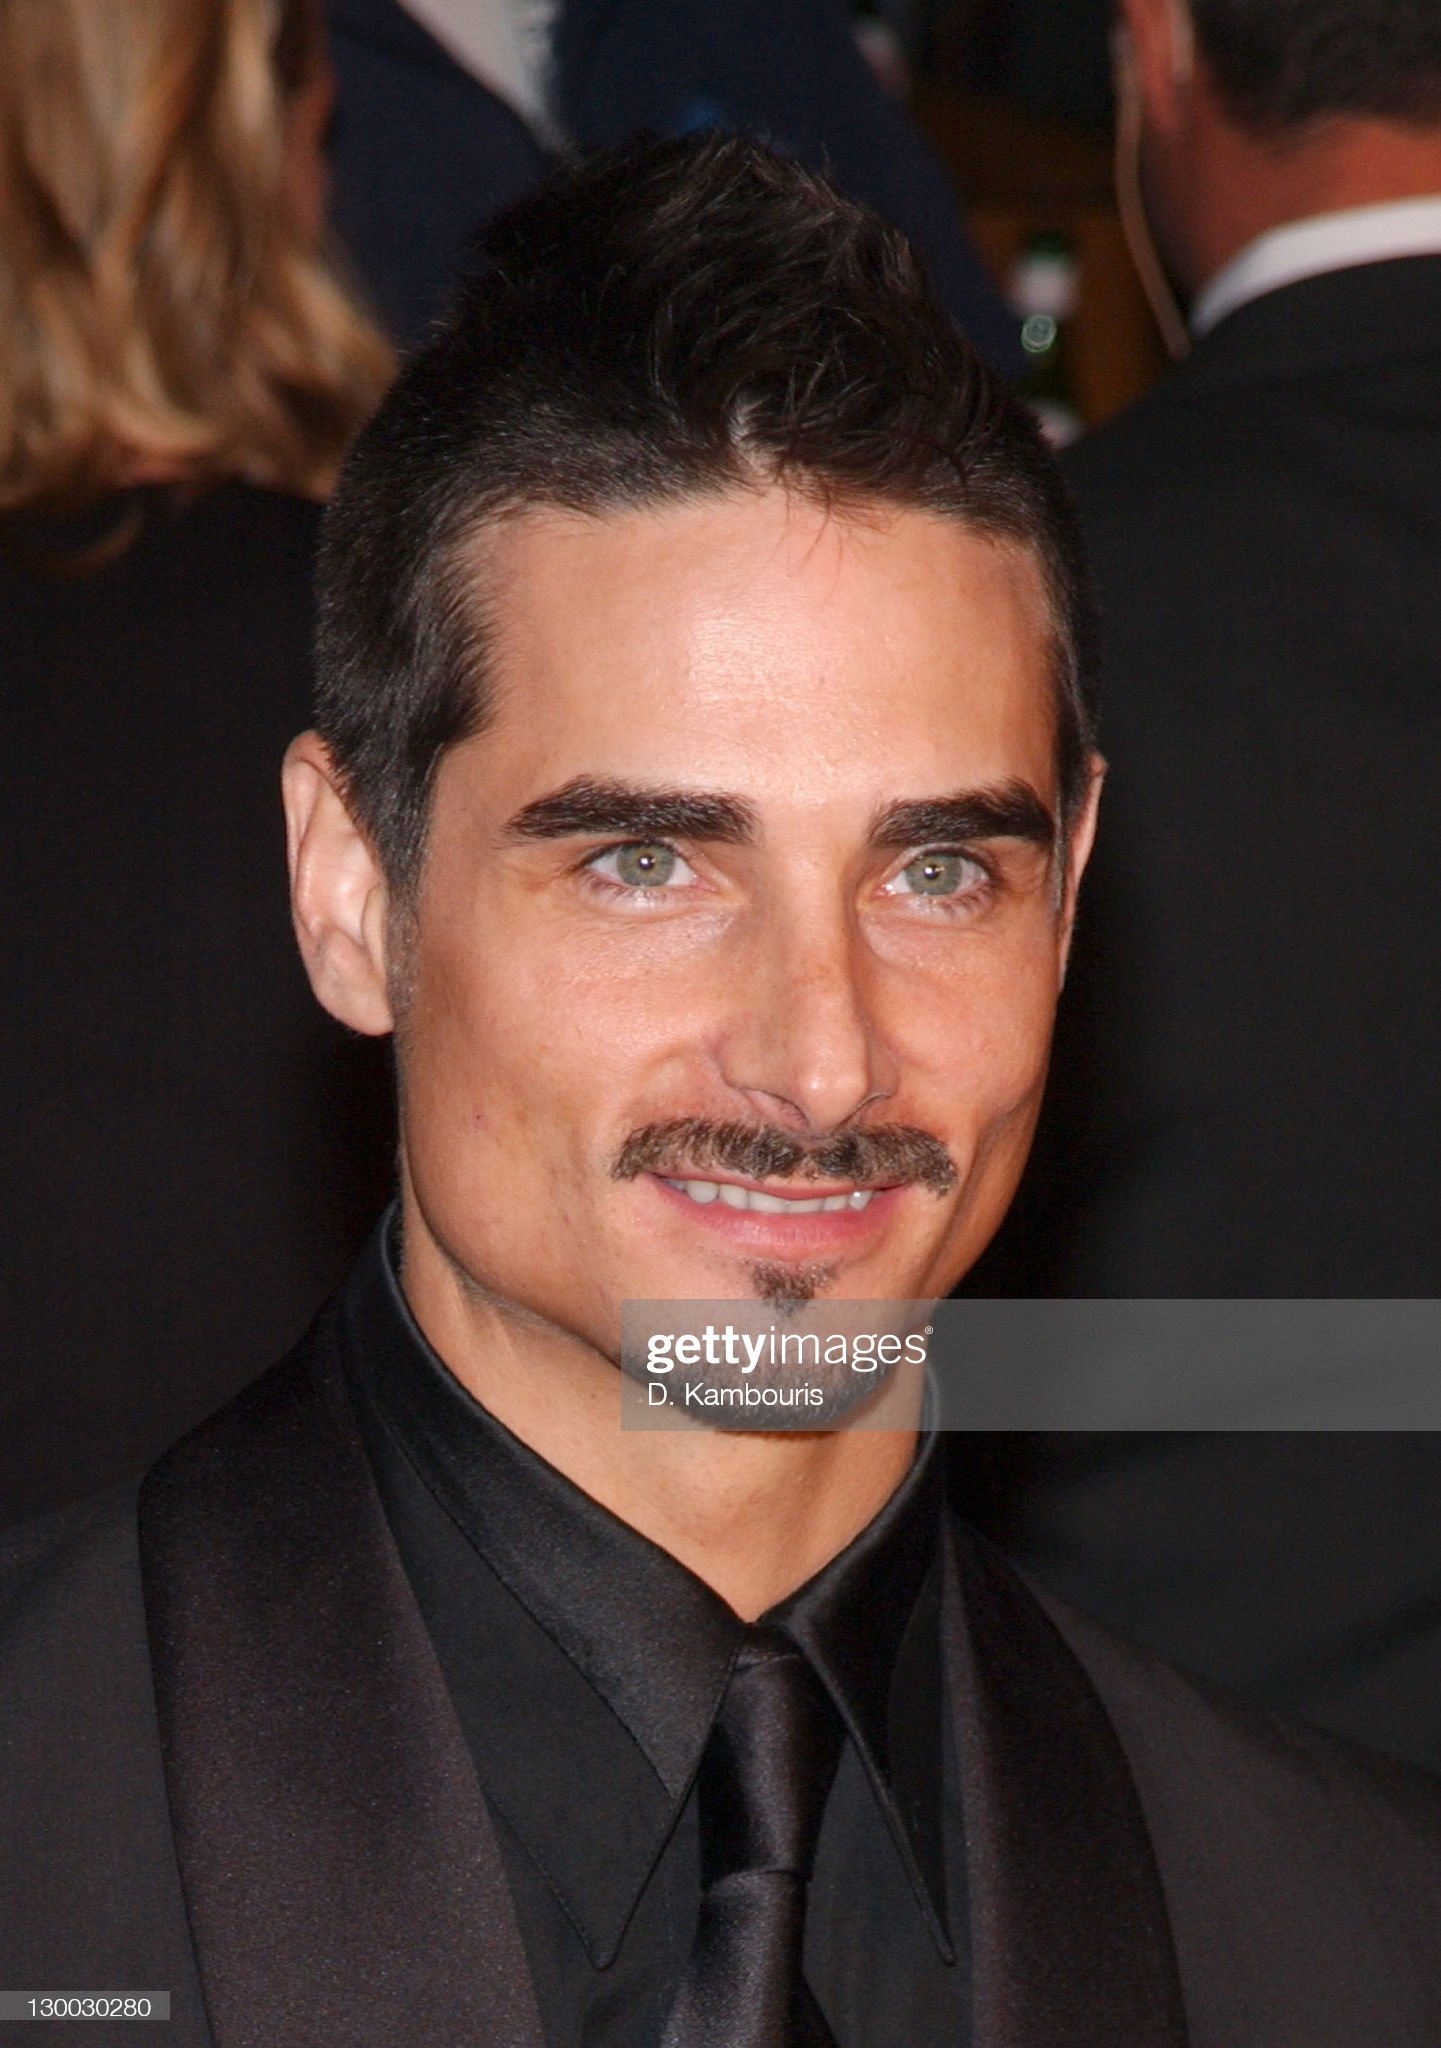 Ojos verdes - Famosas y famosos con los ojos de color VERDE Kevin-richardson-during-2002-vanity-fair-oscar-party-hosted-by-at-picture-id130030280?s=2048x2048